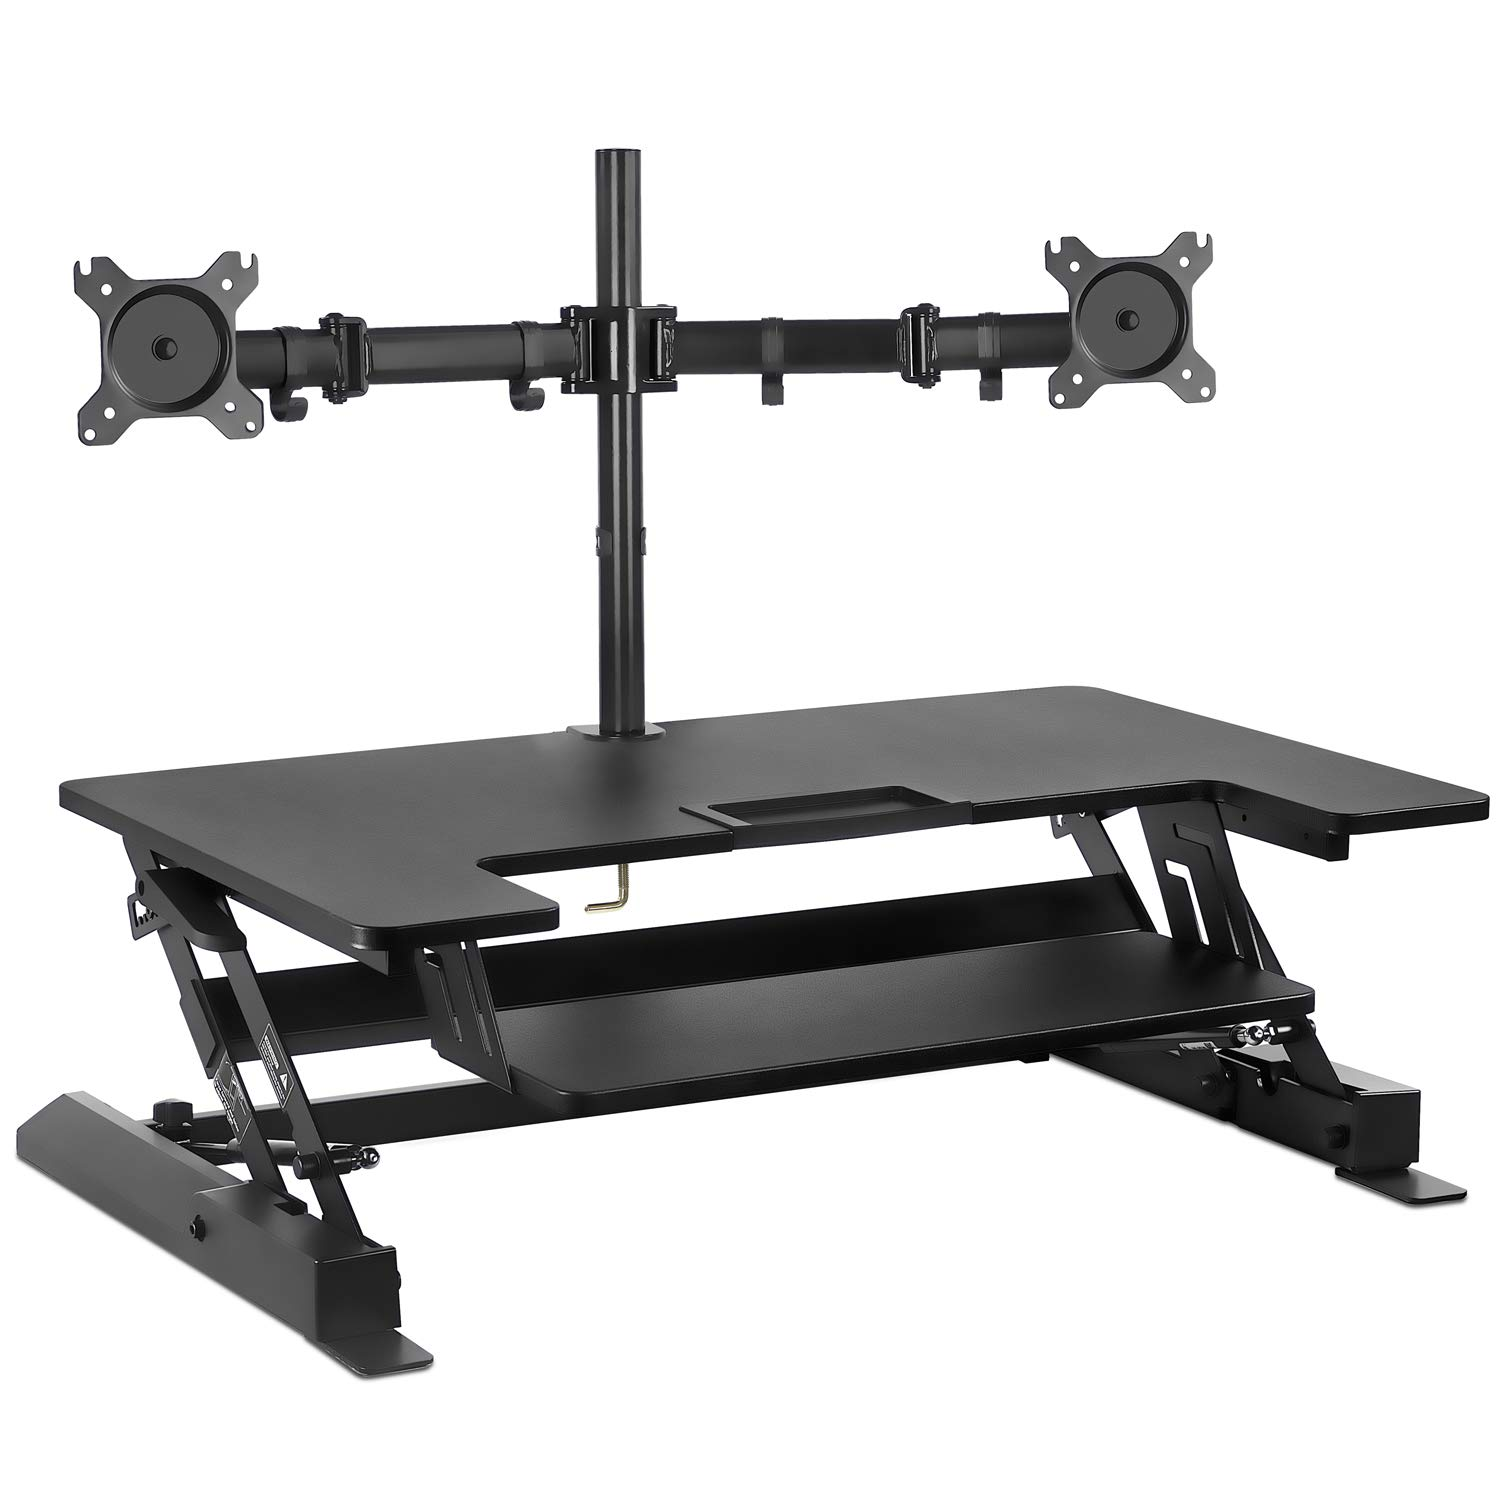 Mount-It! Standing Desk Converter with Bonus Dual Monitor Mount Included - Height Adjustable Stand Up Desk - Wide 36 Inch Sit Stand Workstation with Gas Spring Lift- Black (MI-7934) by Mount-It! (Image #1)